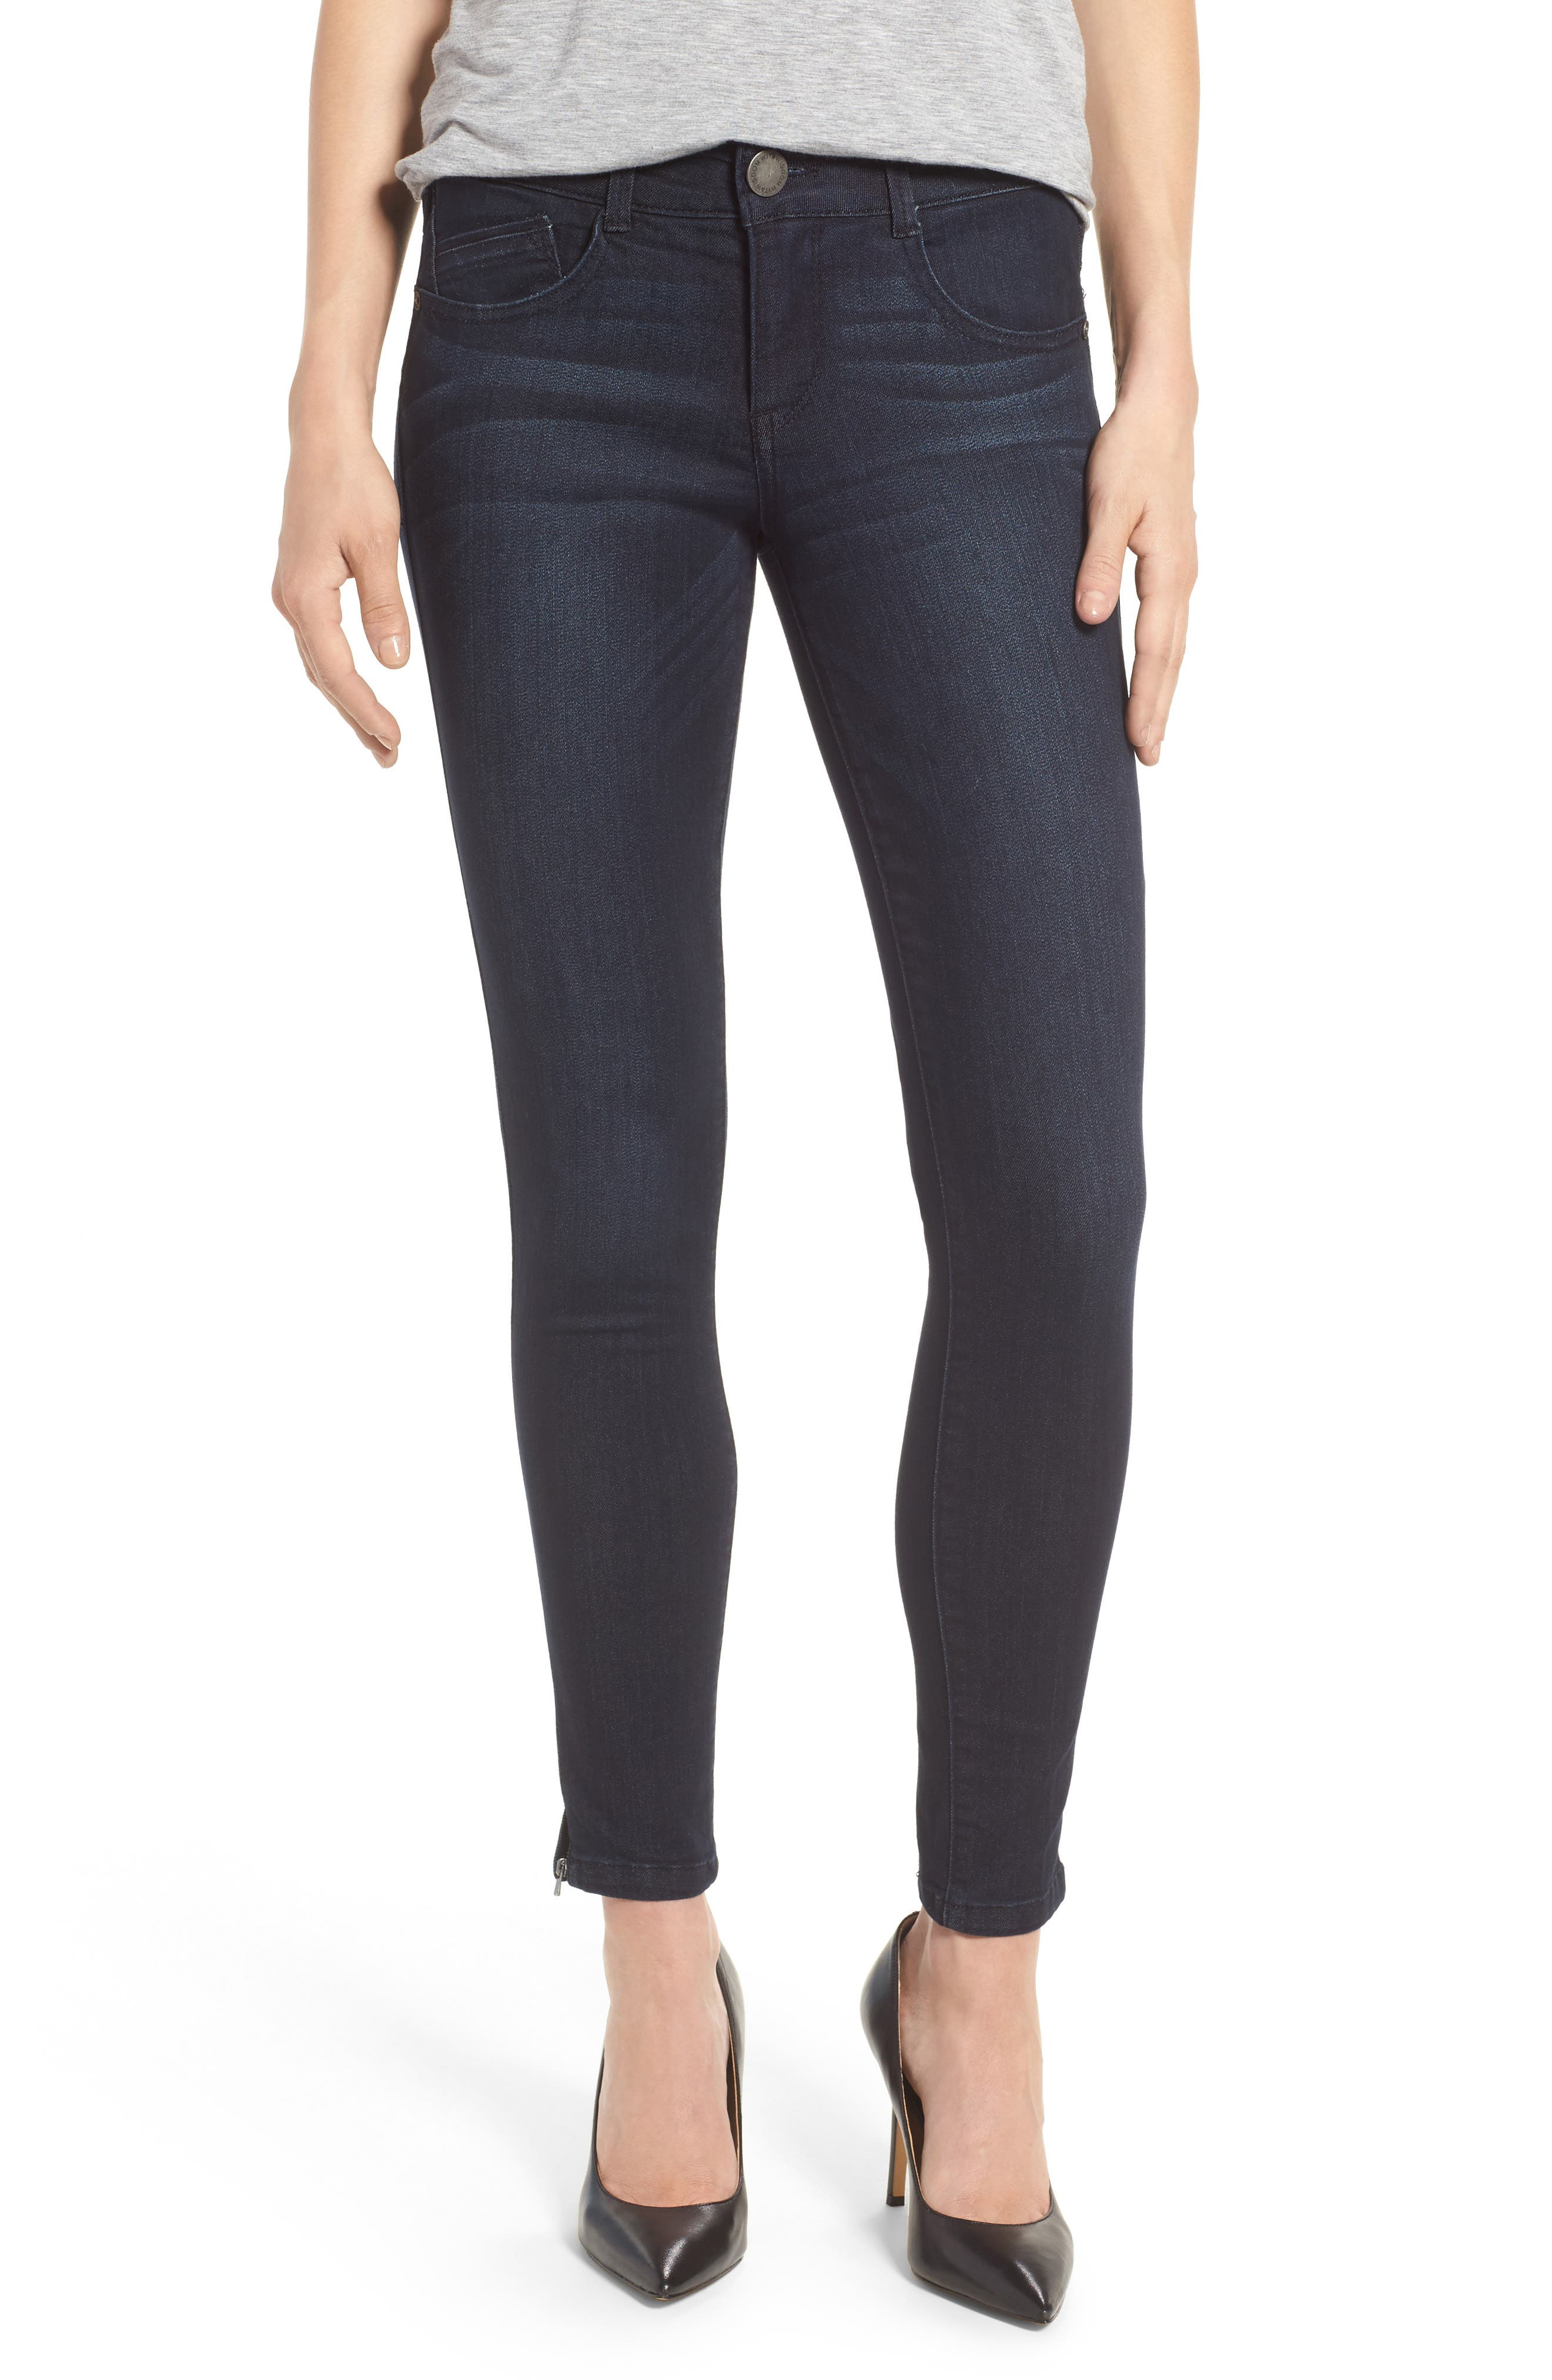 Ab-solution Ankle Zip Skinny Jeans,                             Main thumbnail 1, color,                             410